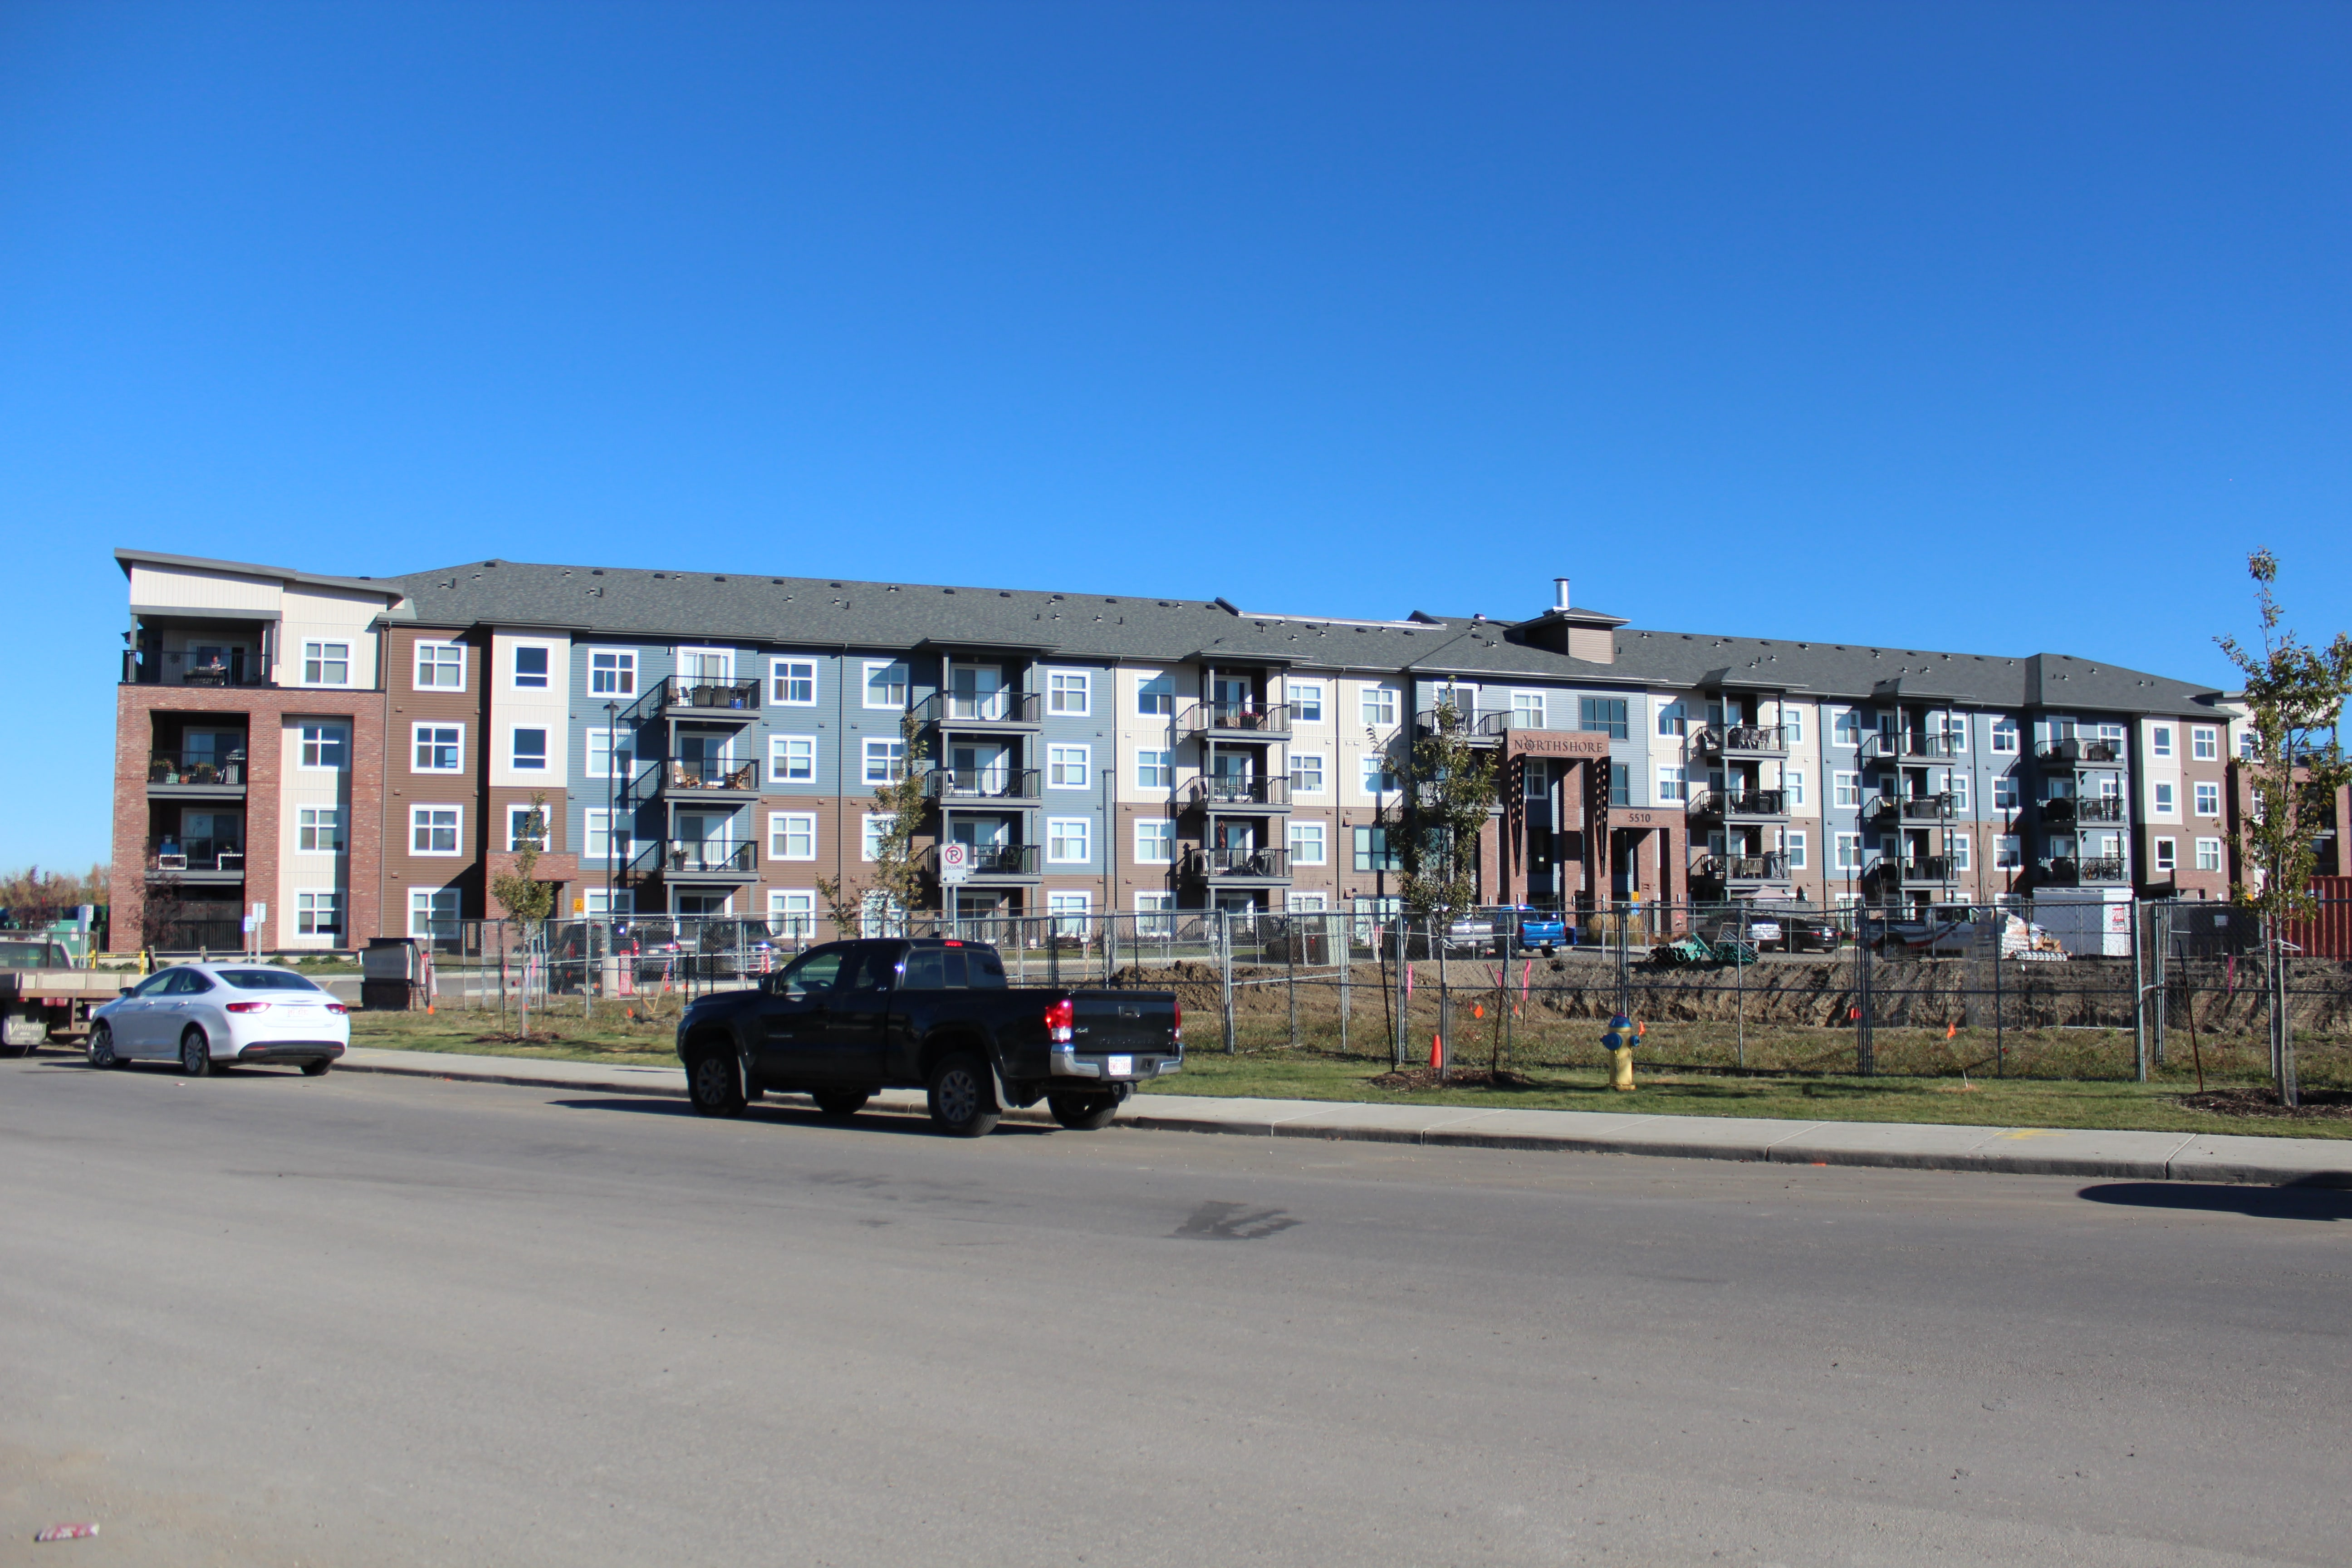 Northshore Condominiums (74 units) Completed September 2015